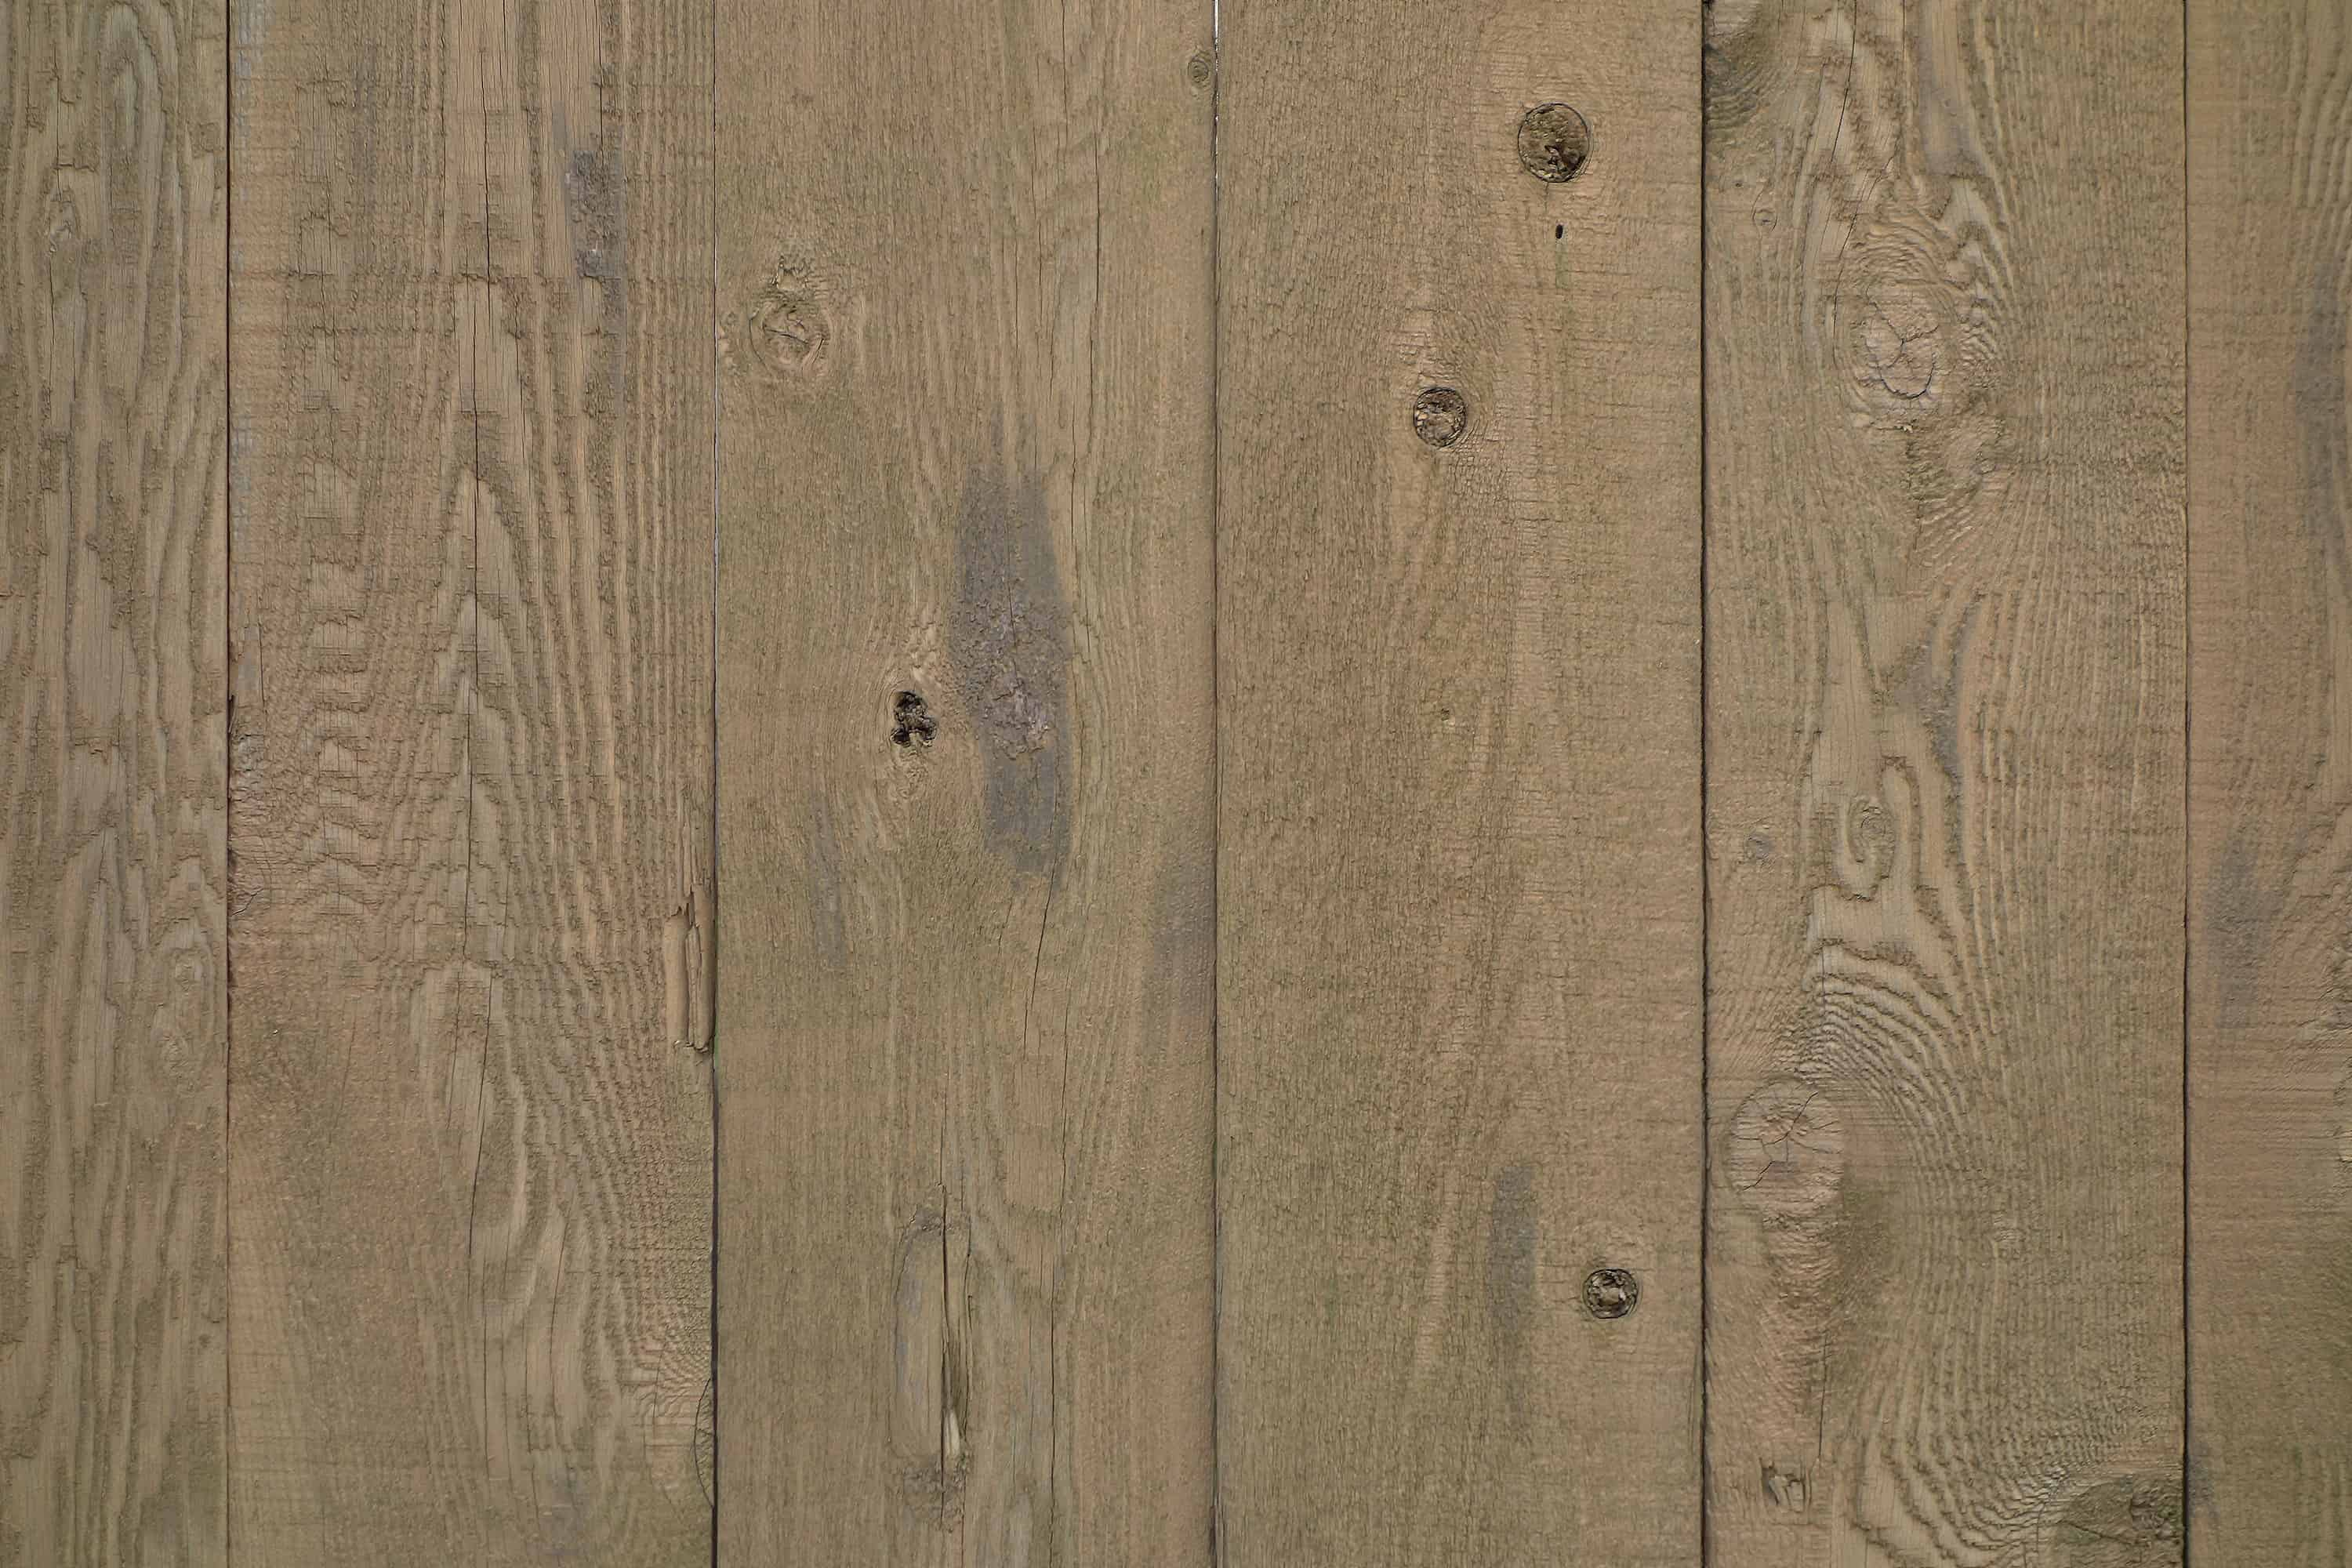 Free download wood panel textures photoshop tutorials